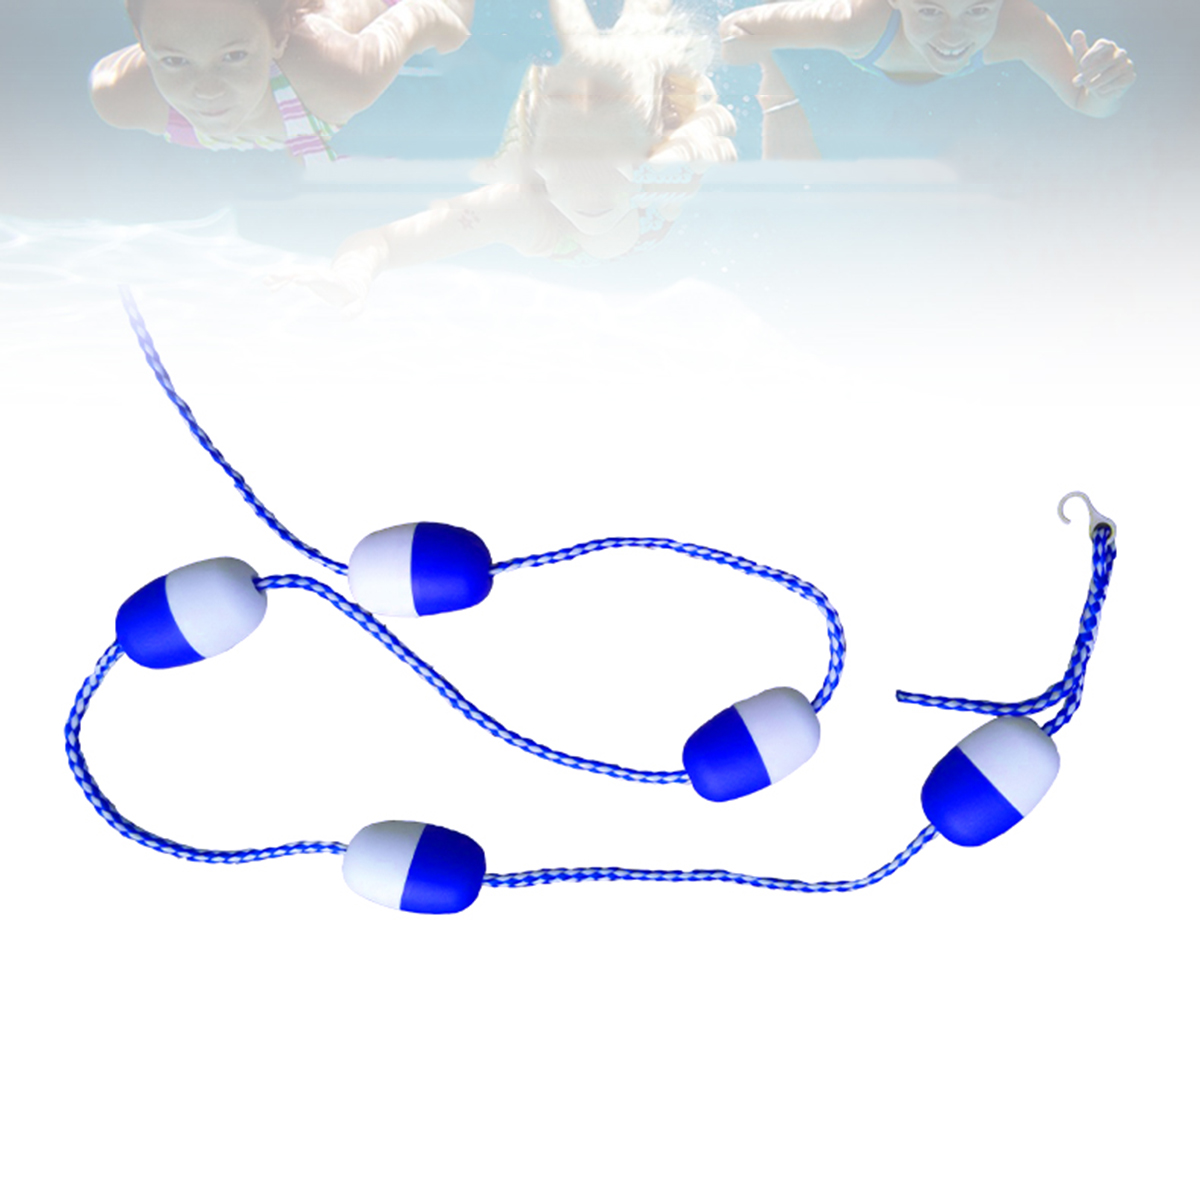 Swimming Pool Safety Divider Rope